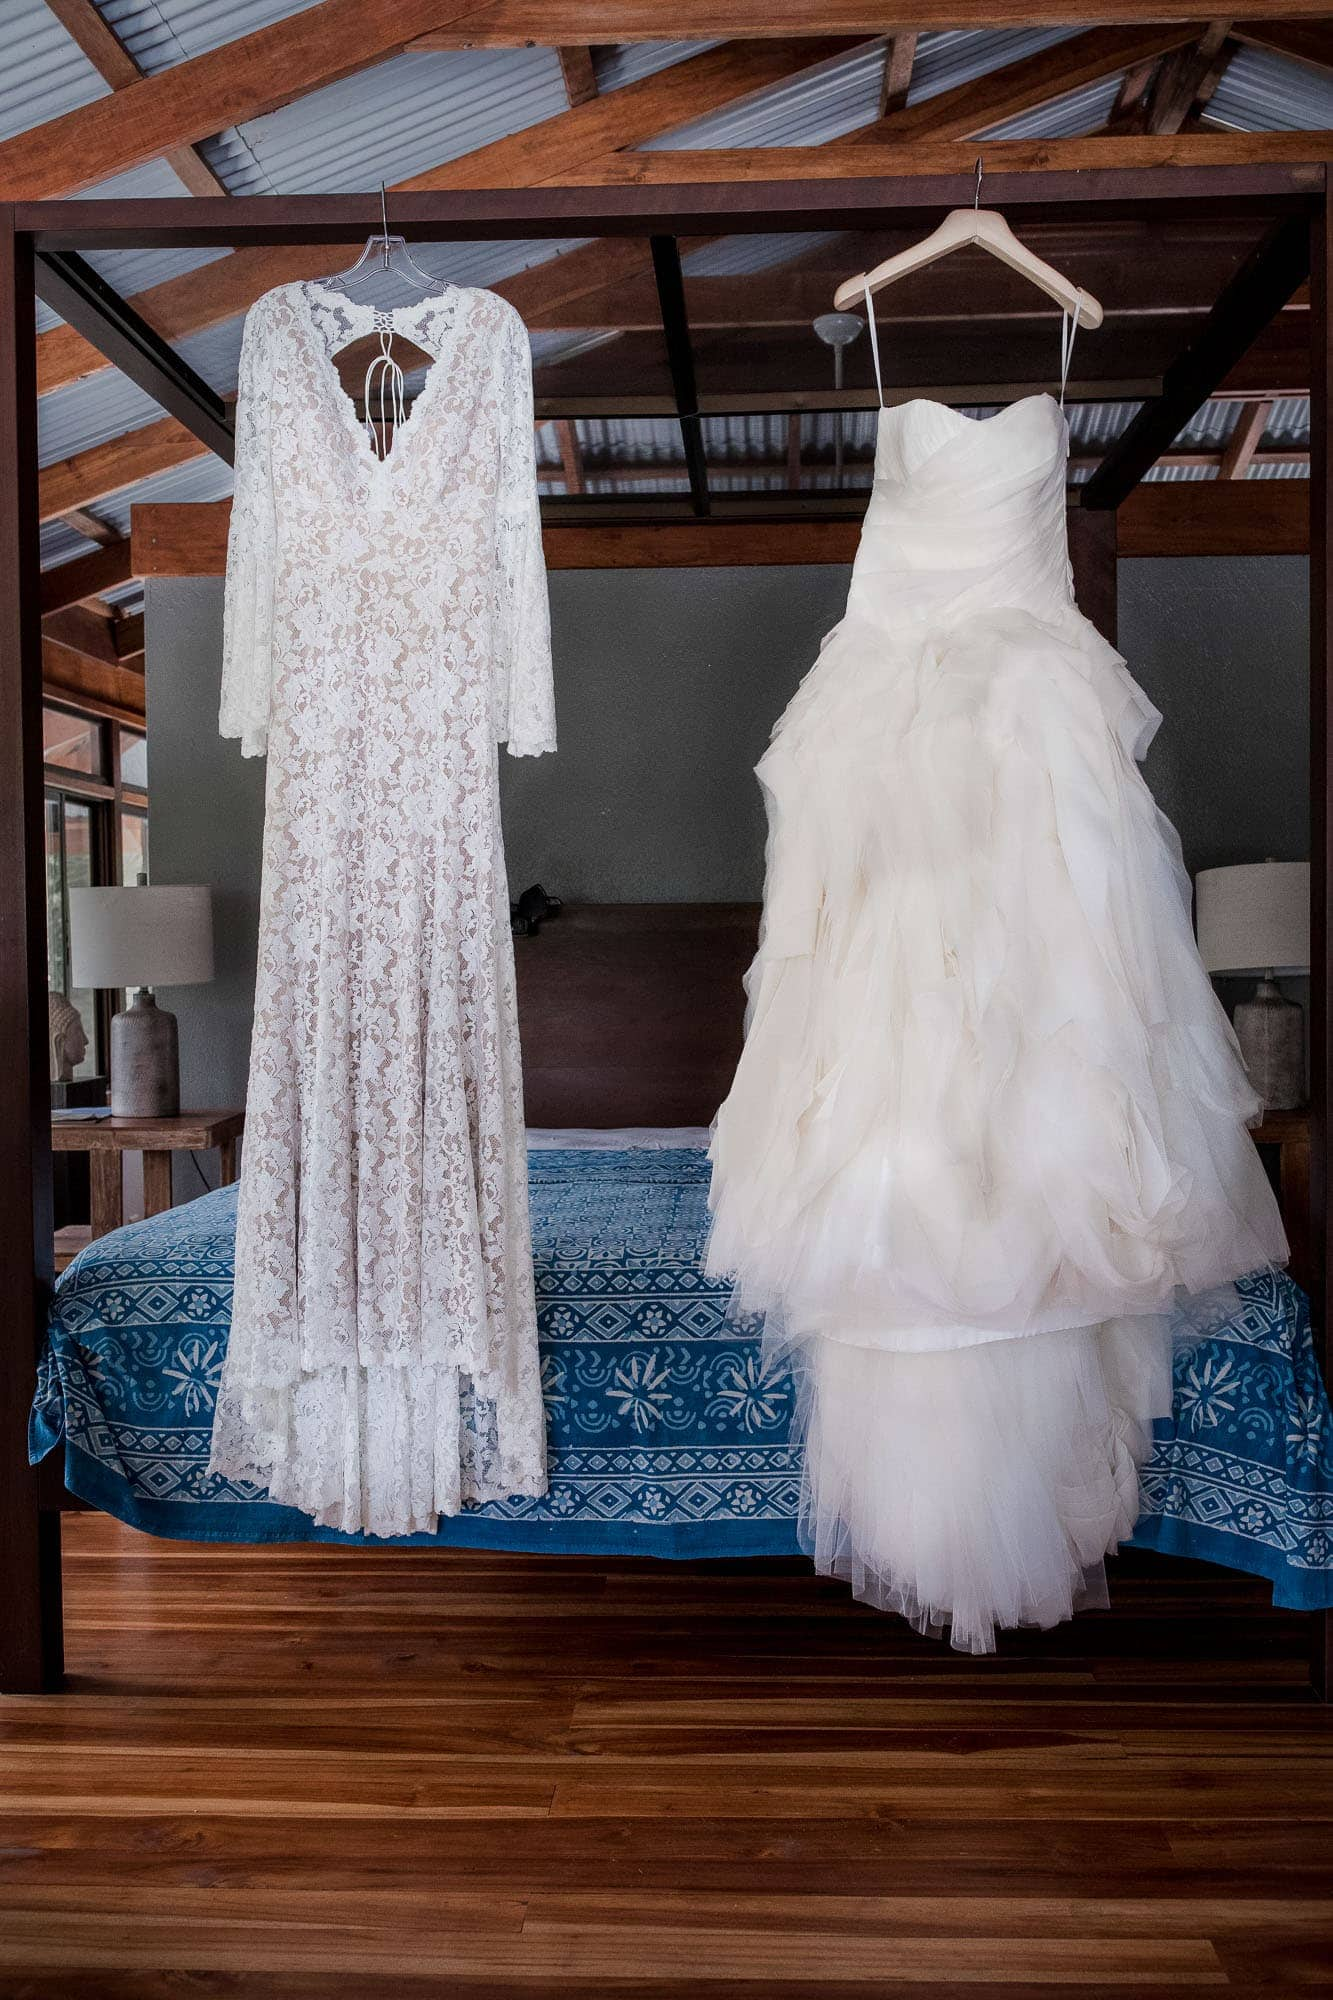 two bride dresses